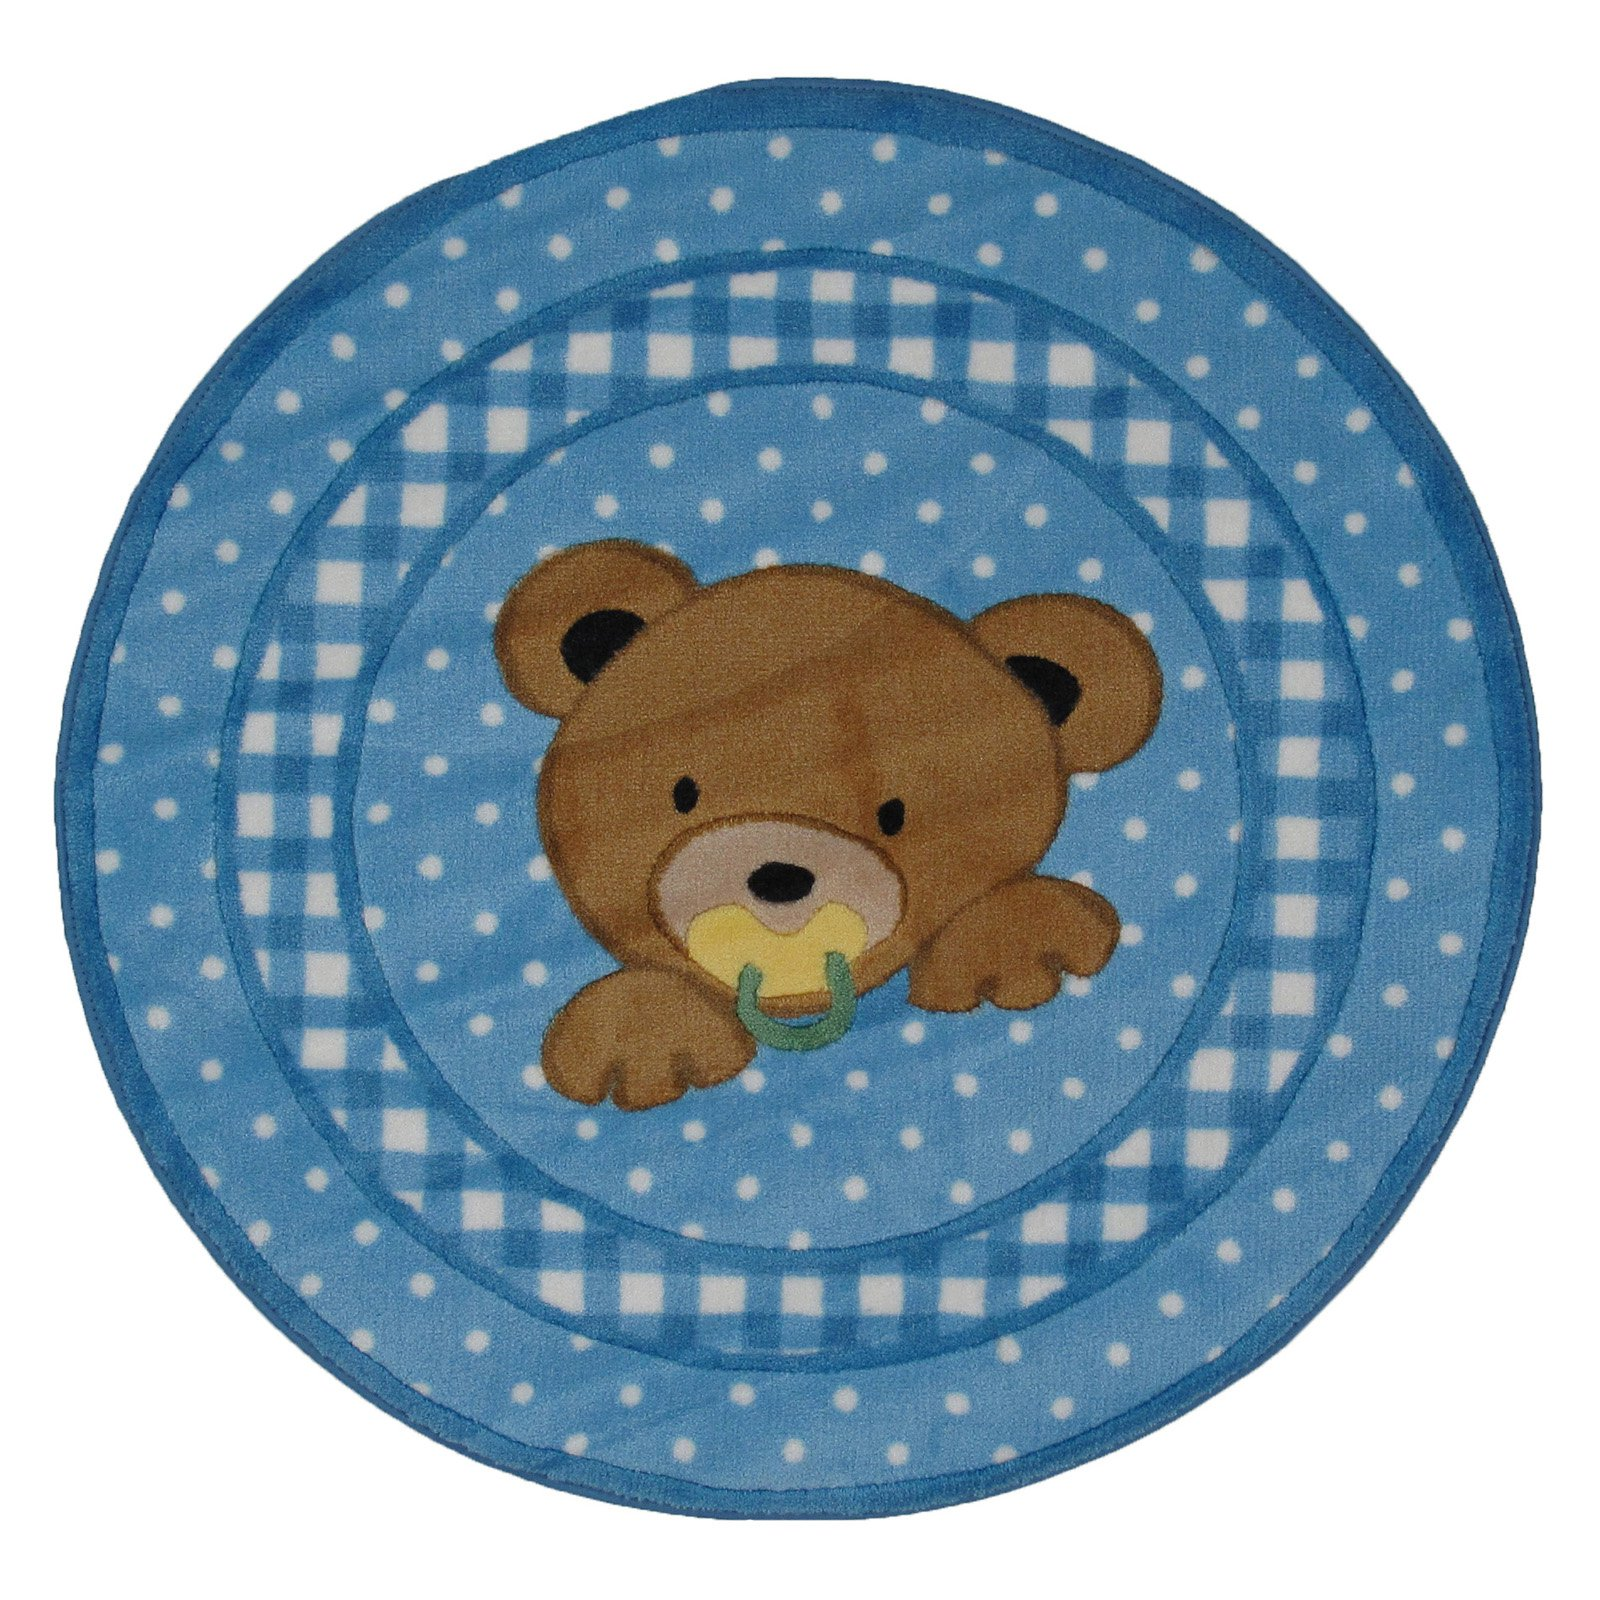 "Fun Rugs Teddy Center Blue 39"" Round Rug"